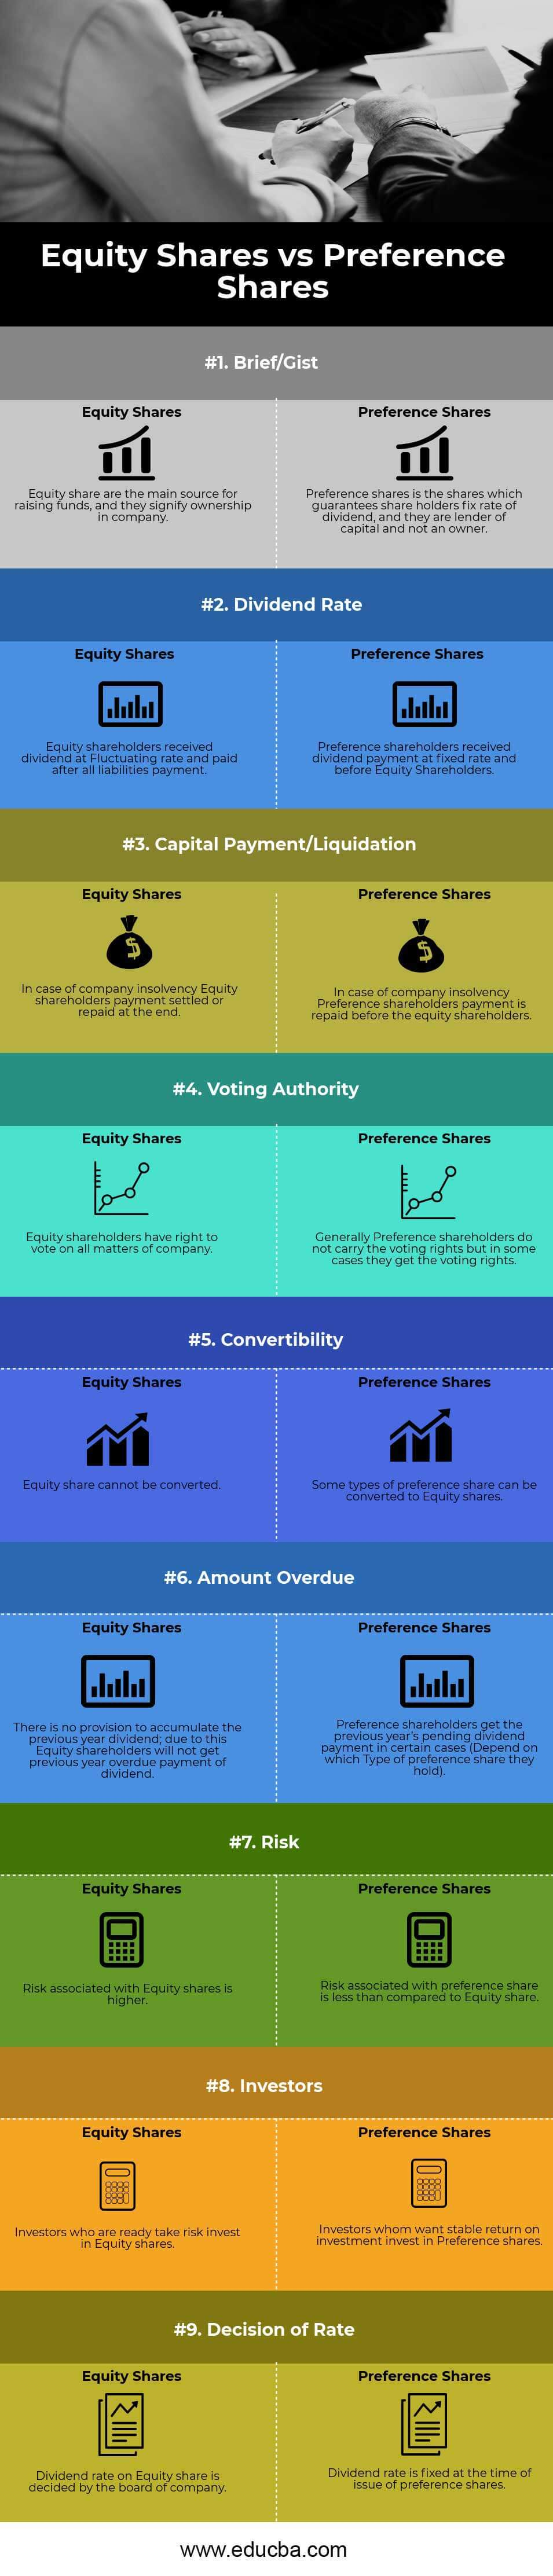 Equity Shares vs Preference Shares Infography